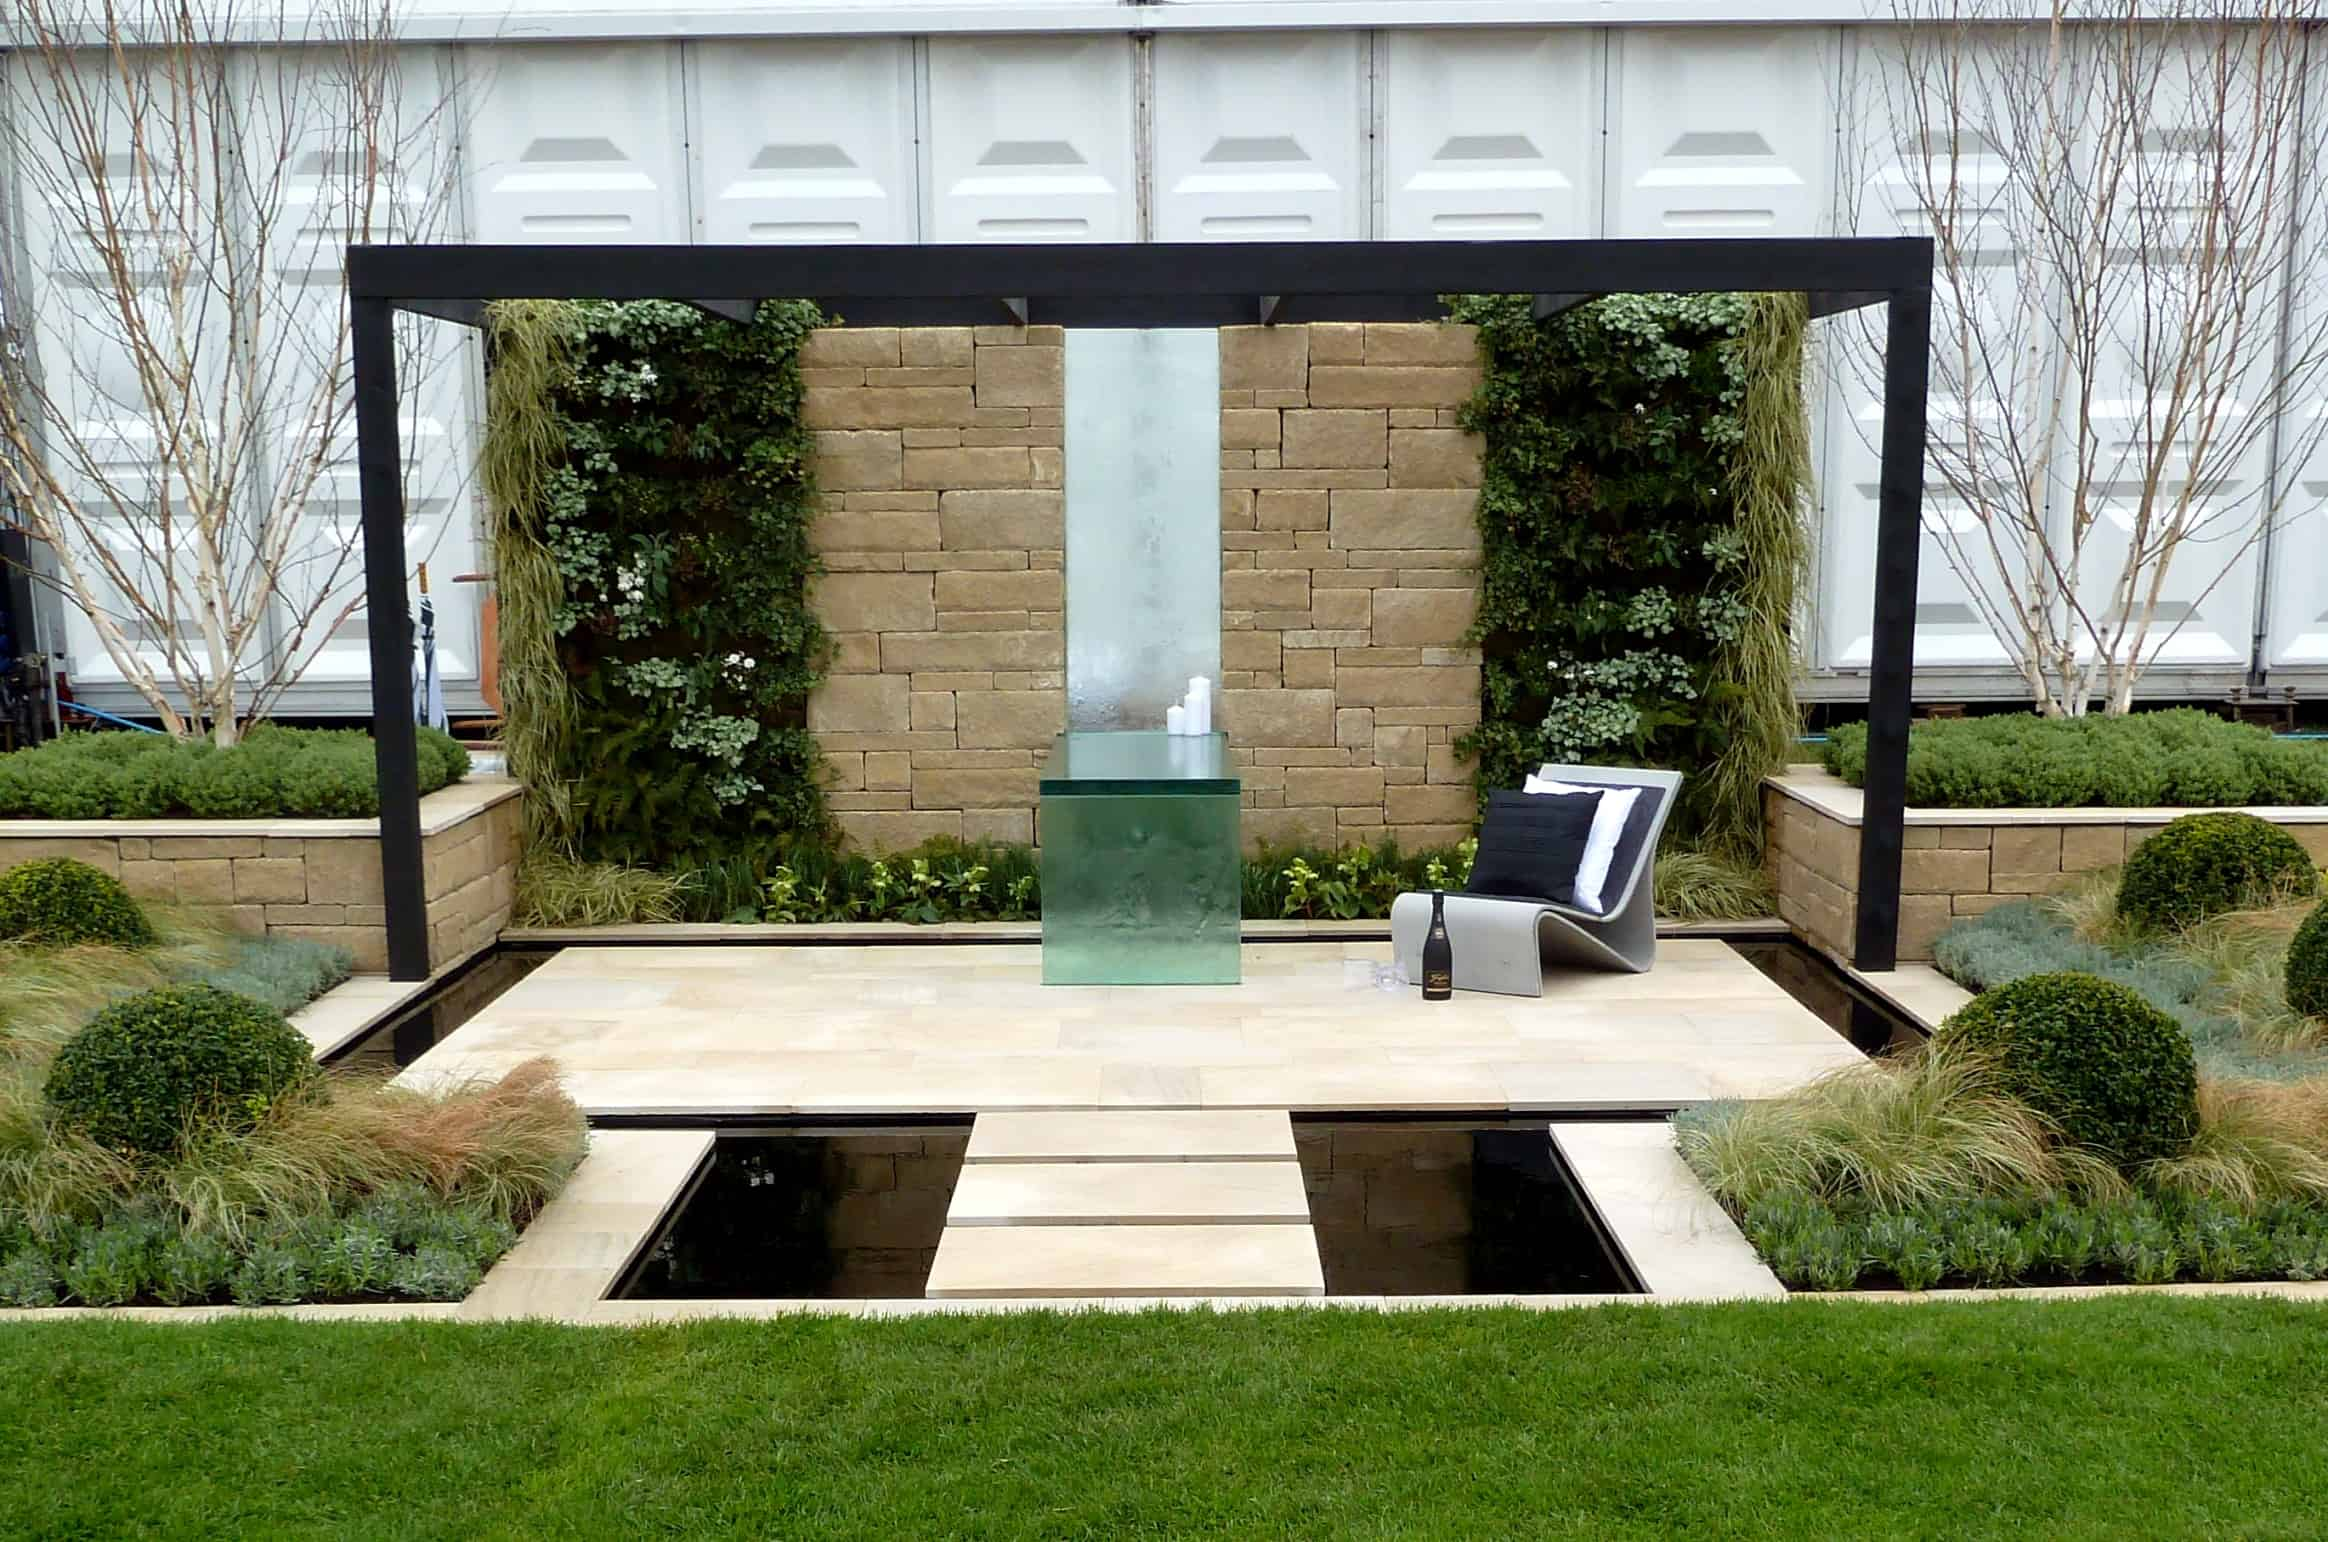 Garden Design Yorkshire bali yorkshire and north east members scoop premier gold at